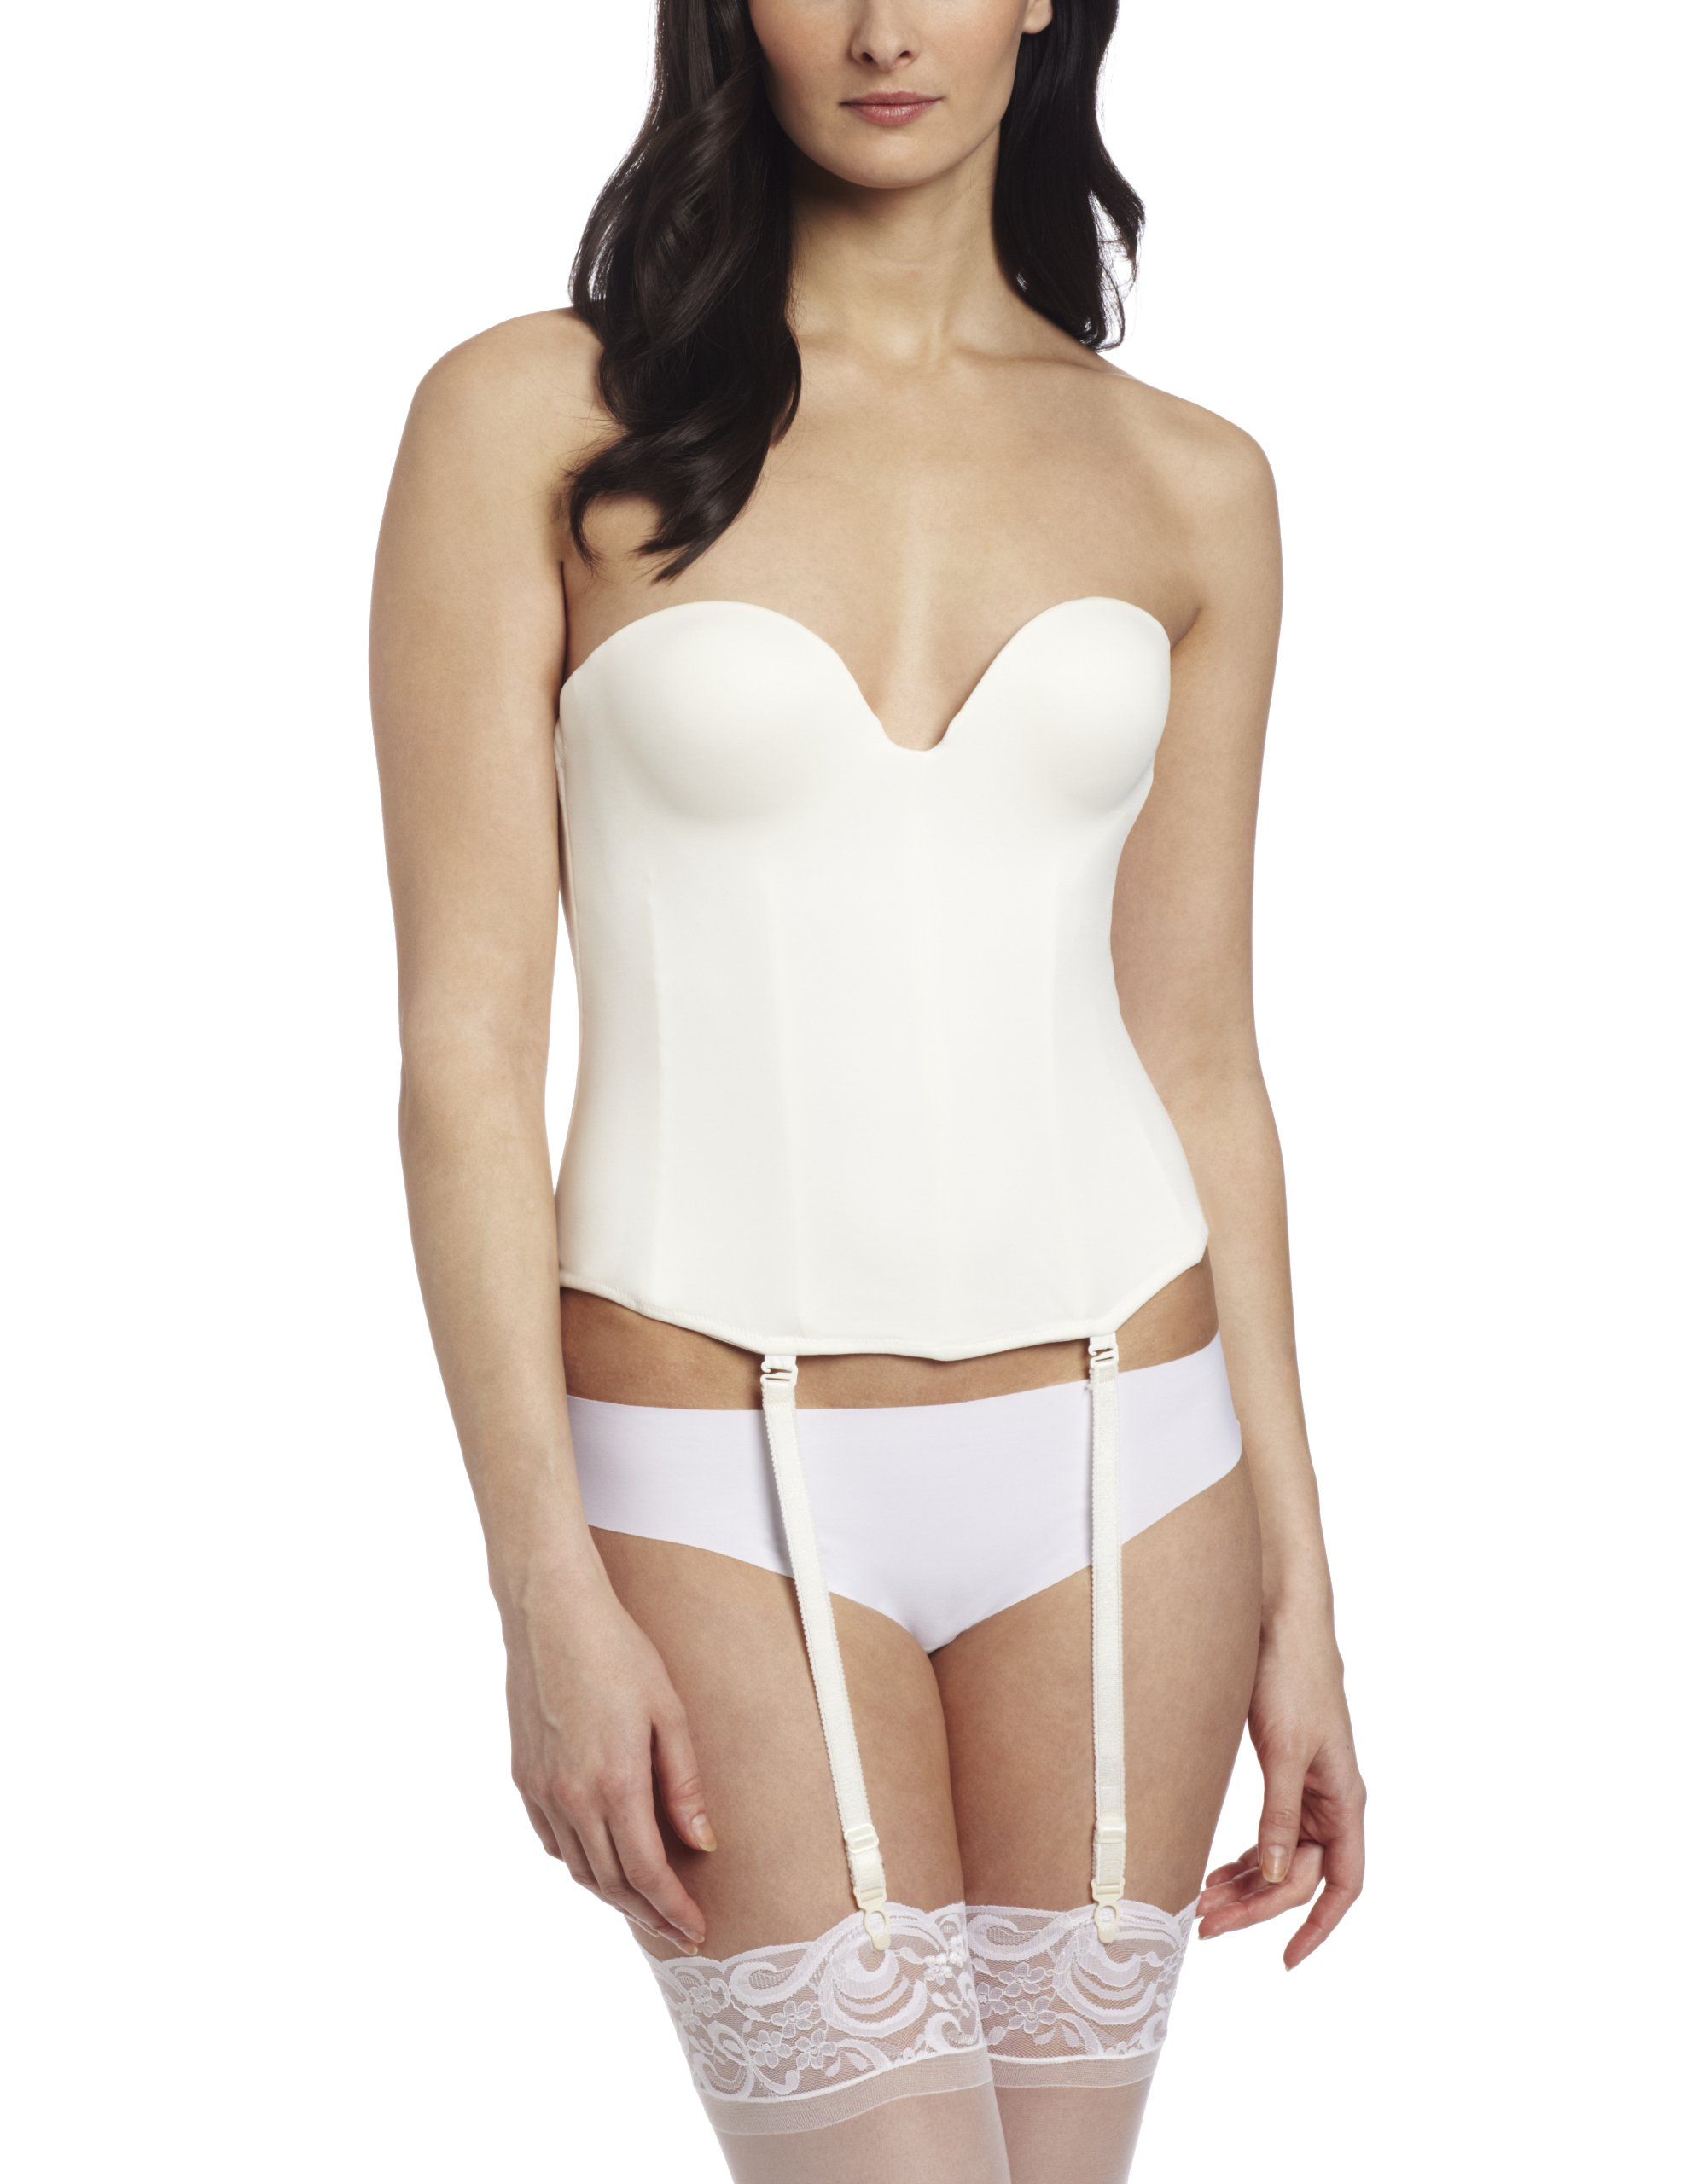 Carnival Women's Low Plunge Backless Seamless Molded Corset Bra